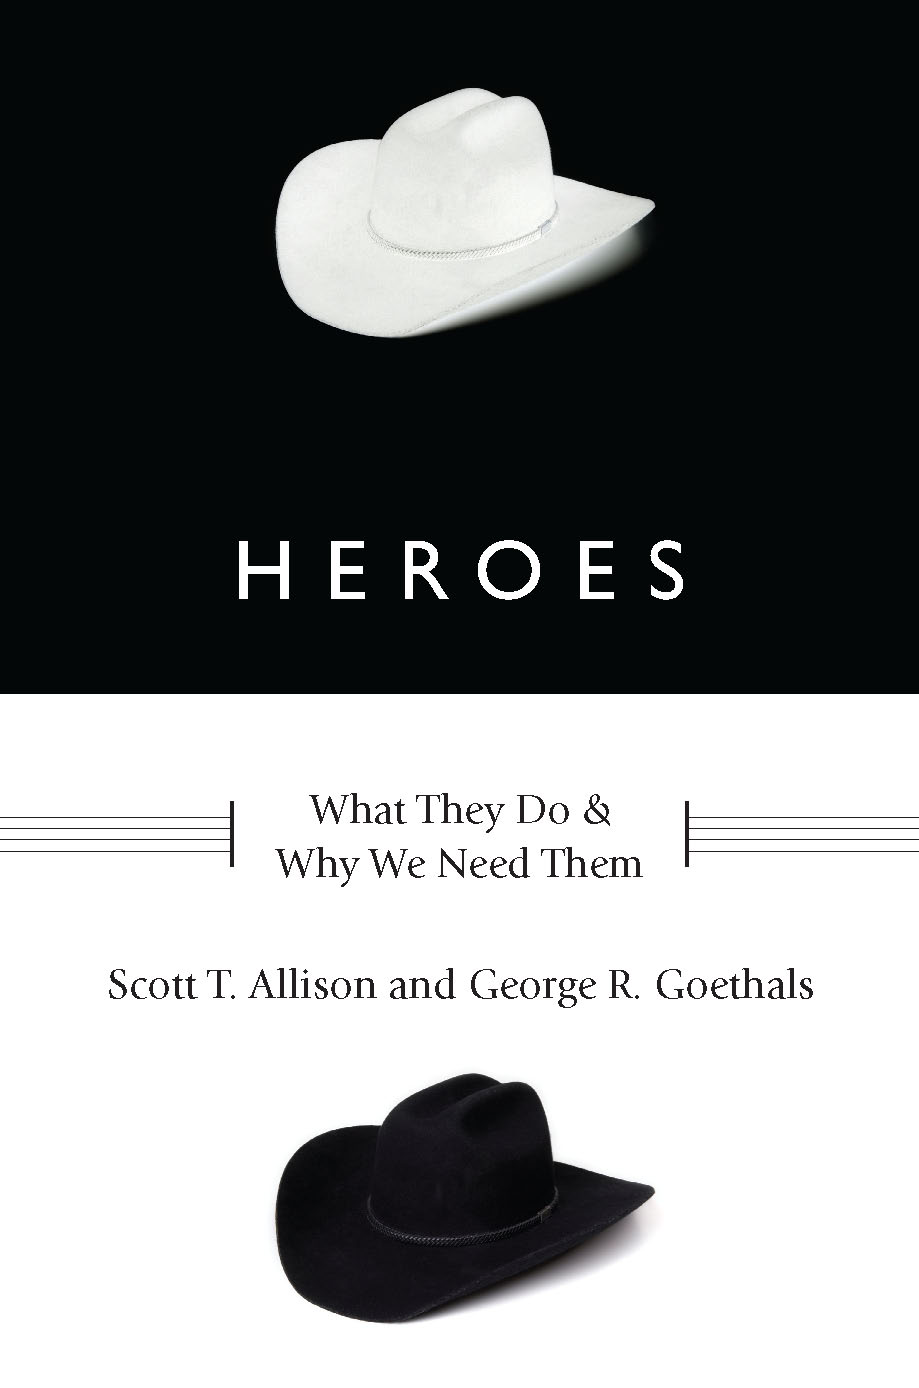 allison_heroes_9780199739745.jpg